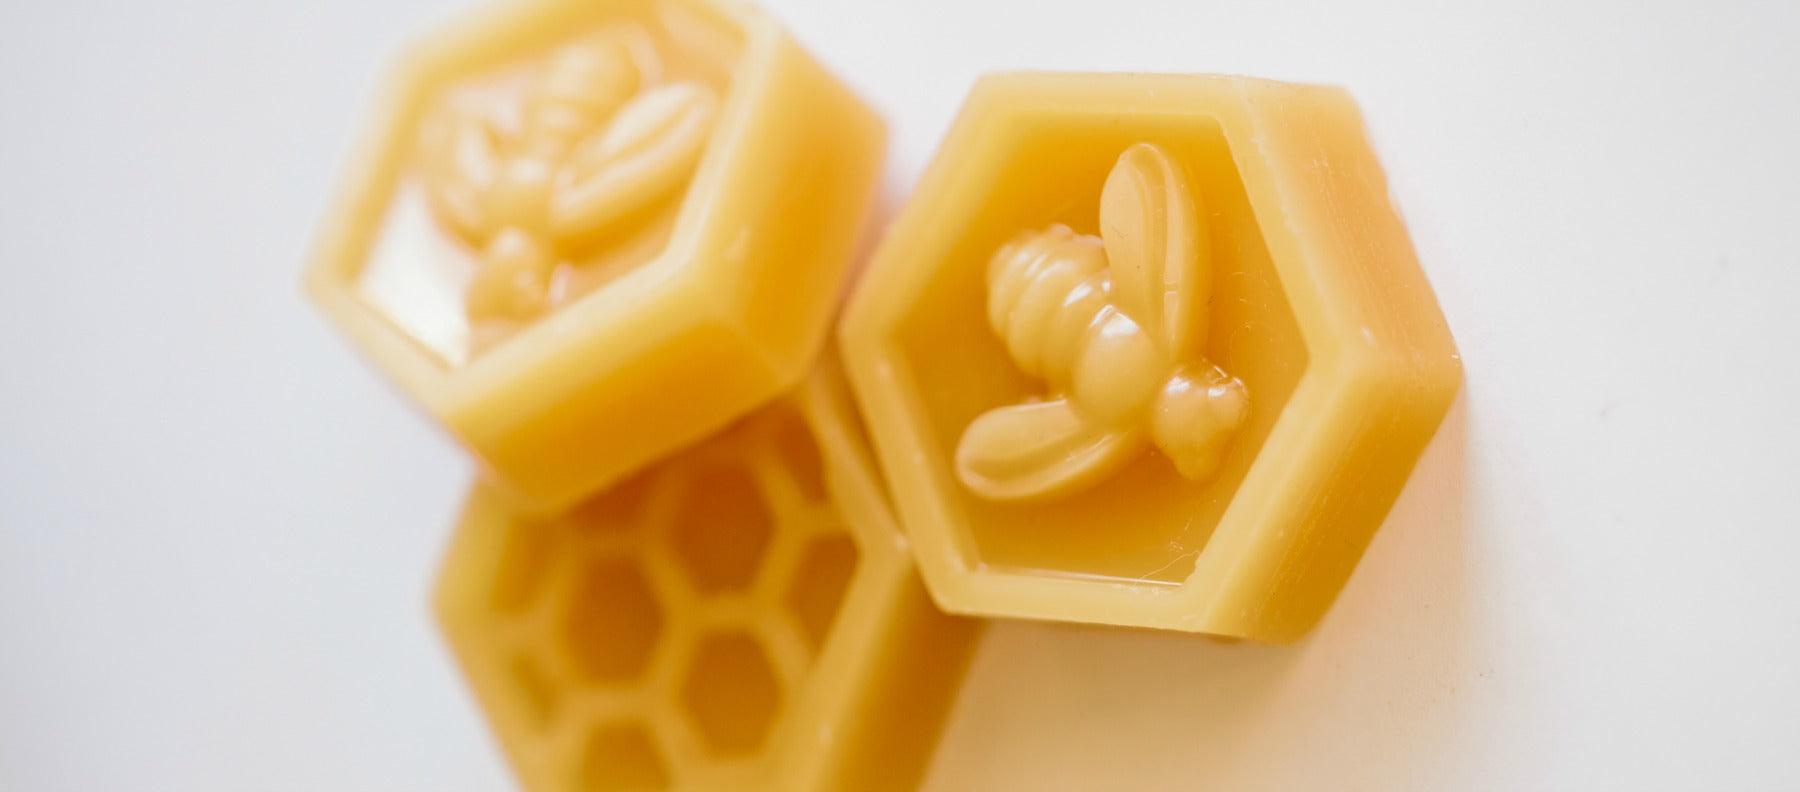 Introducing Bee-autiful Beeswax